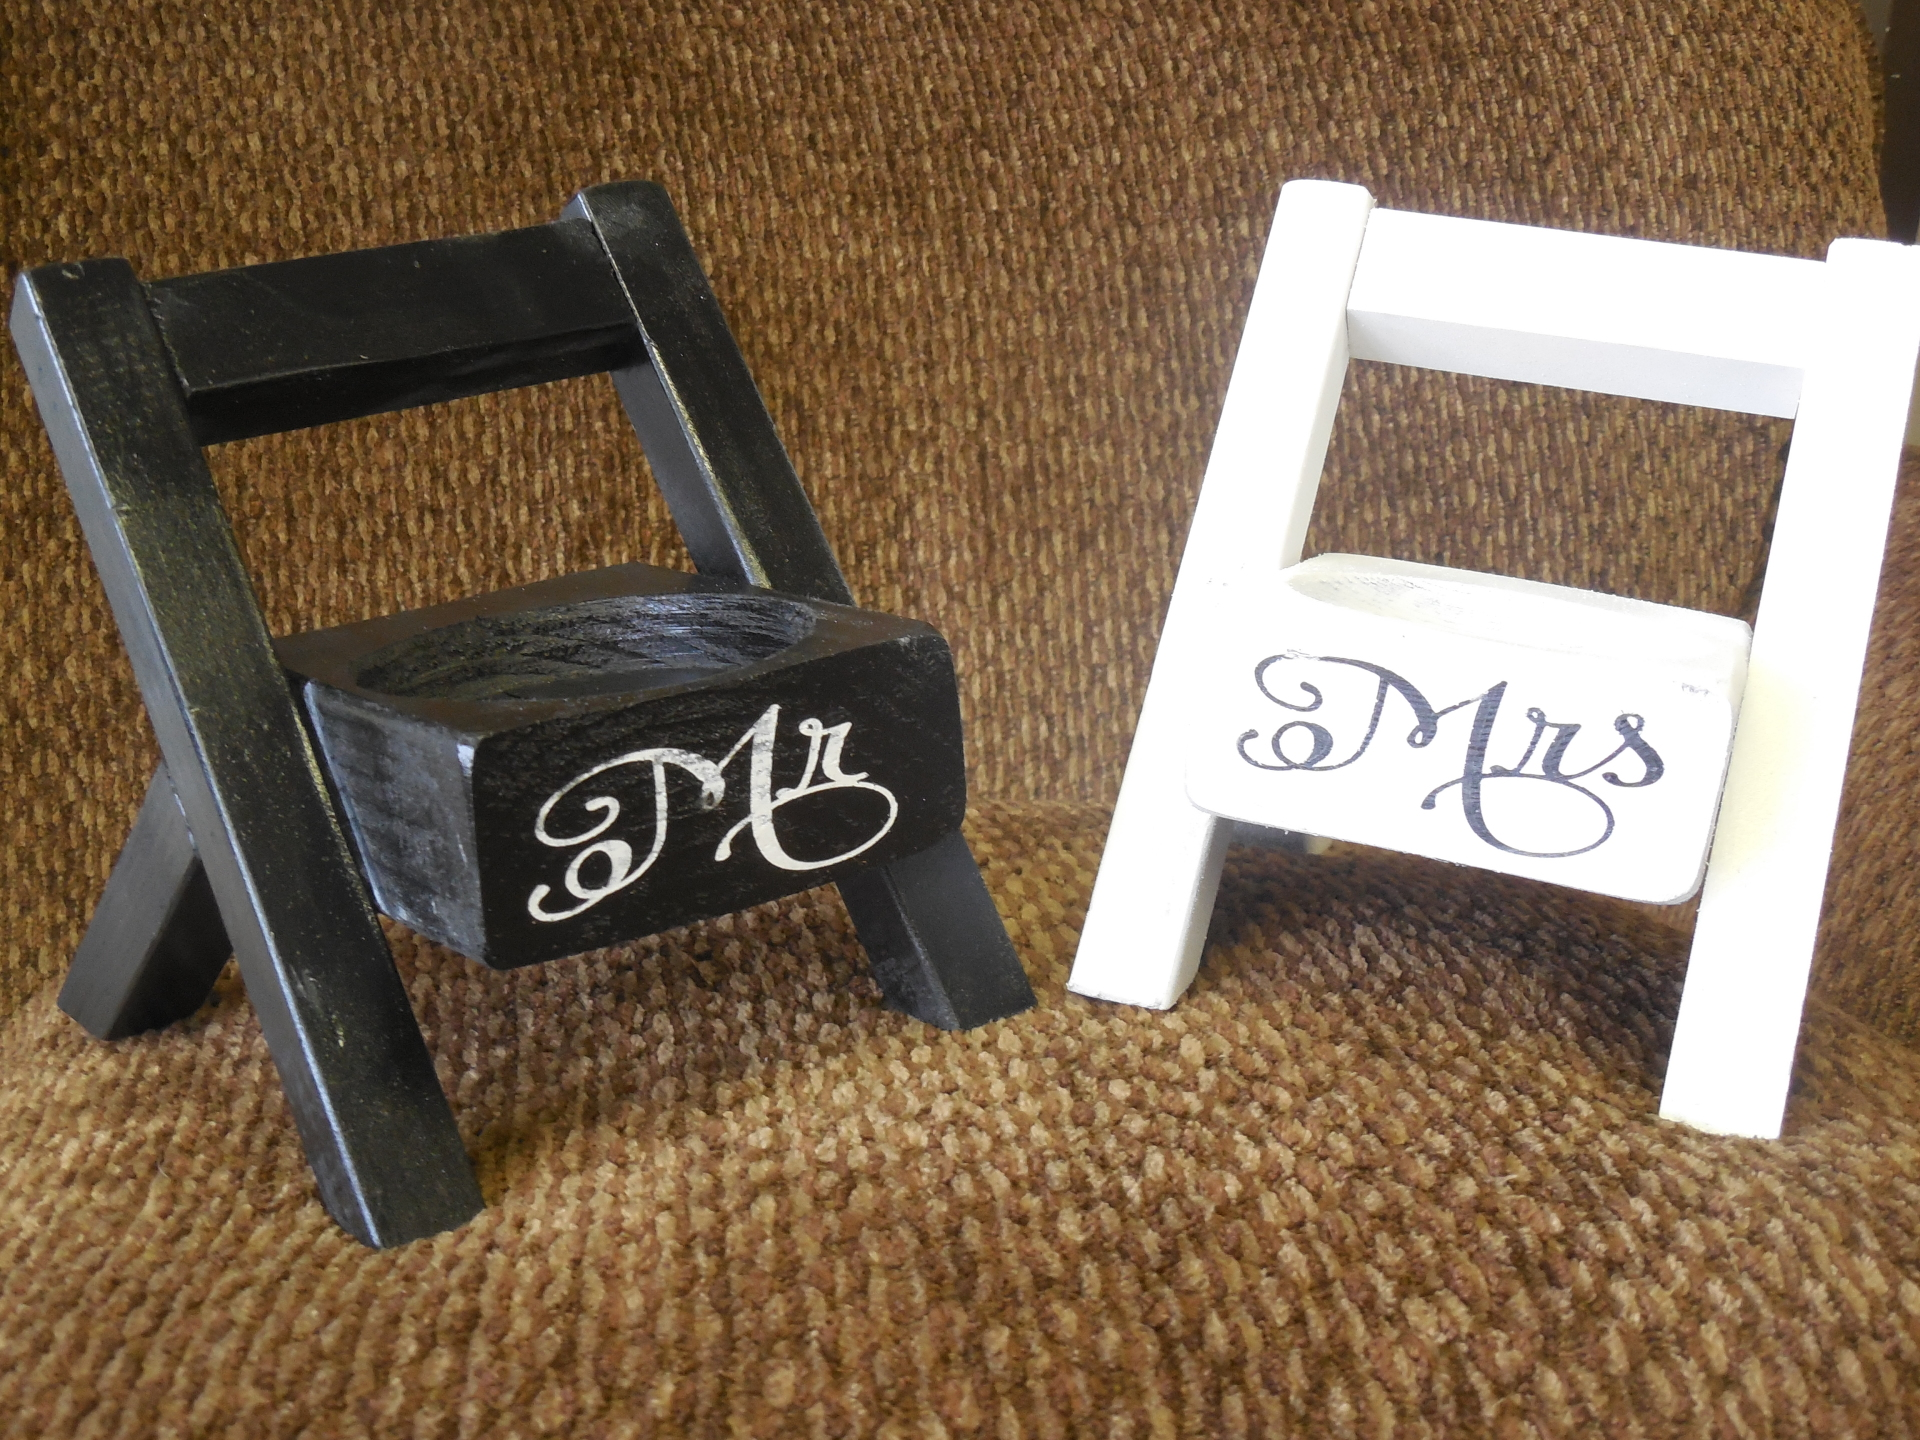 Cute home decor. Cup holder 6 inch chair, hand made in the U.S.A by Orr Decor. Made from wood, paint and hard work. air